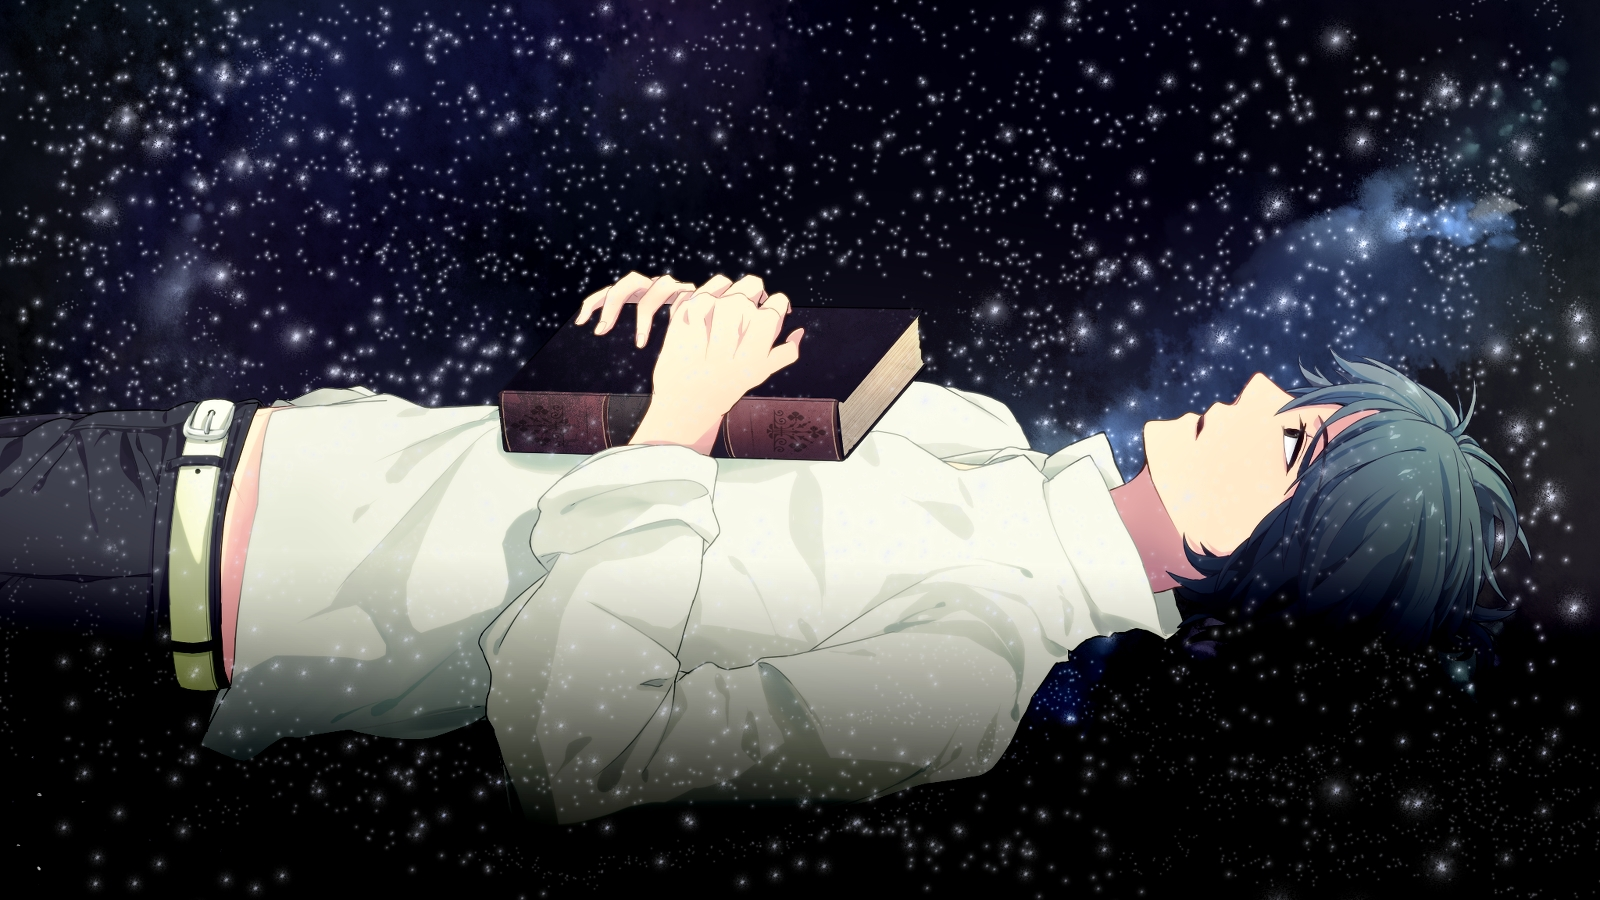 Tags Anime Pixiv Id 2270950 VOCALOID KAITO Wallpaper Facebook Cover